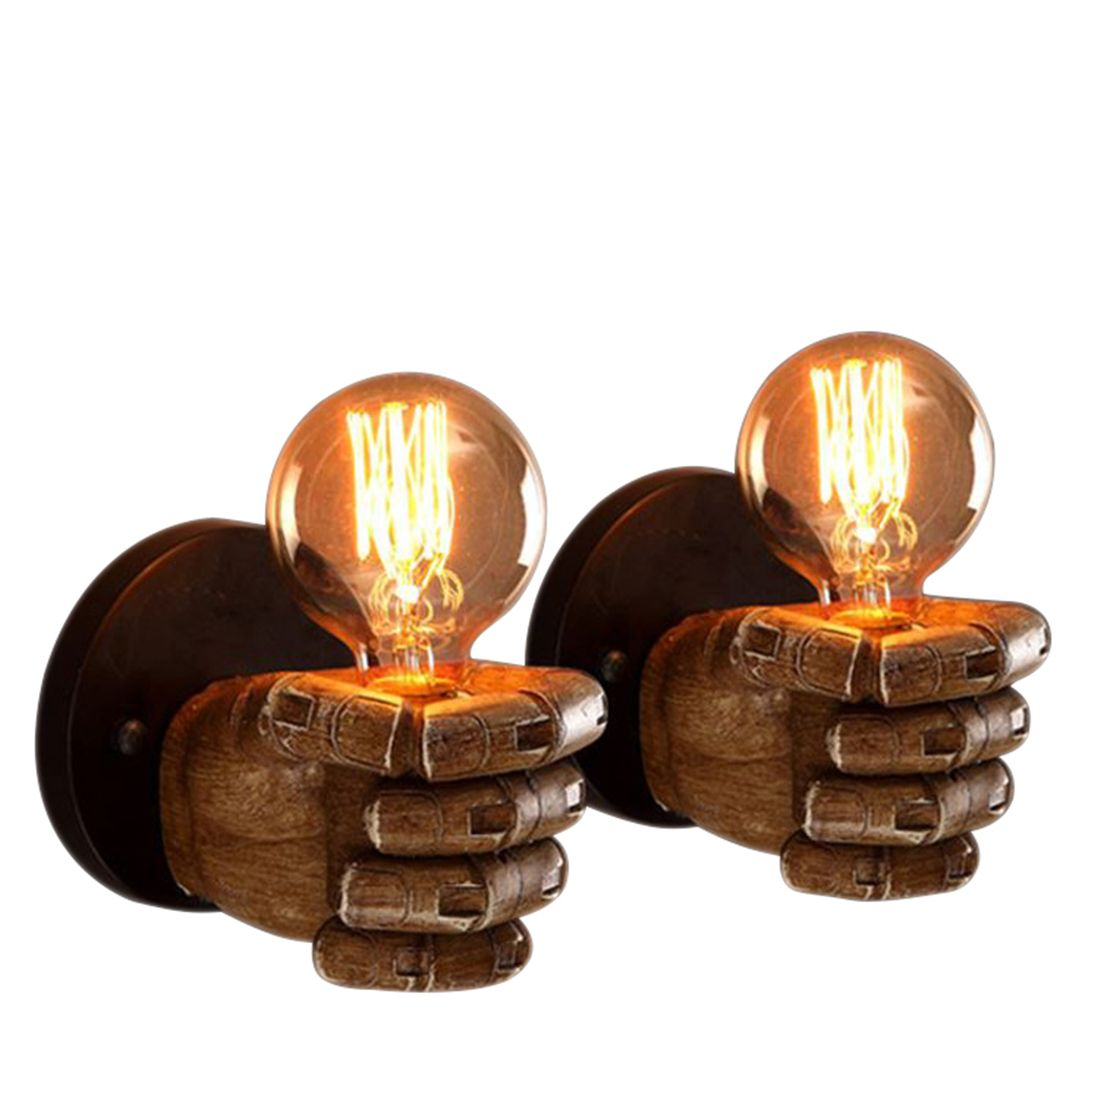 1 Pair of Left and Right Hand Retro Creative Fist Resin Wall Lamp Loft Industrial Style Lamp Dec Sushi Restaurant Bar Restaurant недорго, оригинальная цена